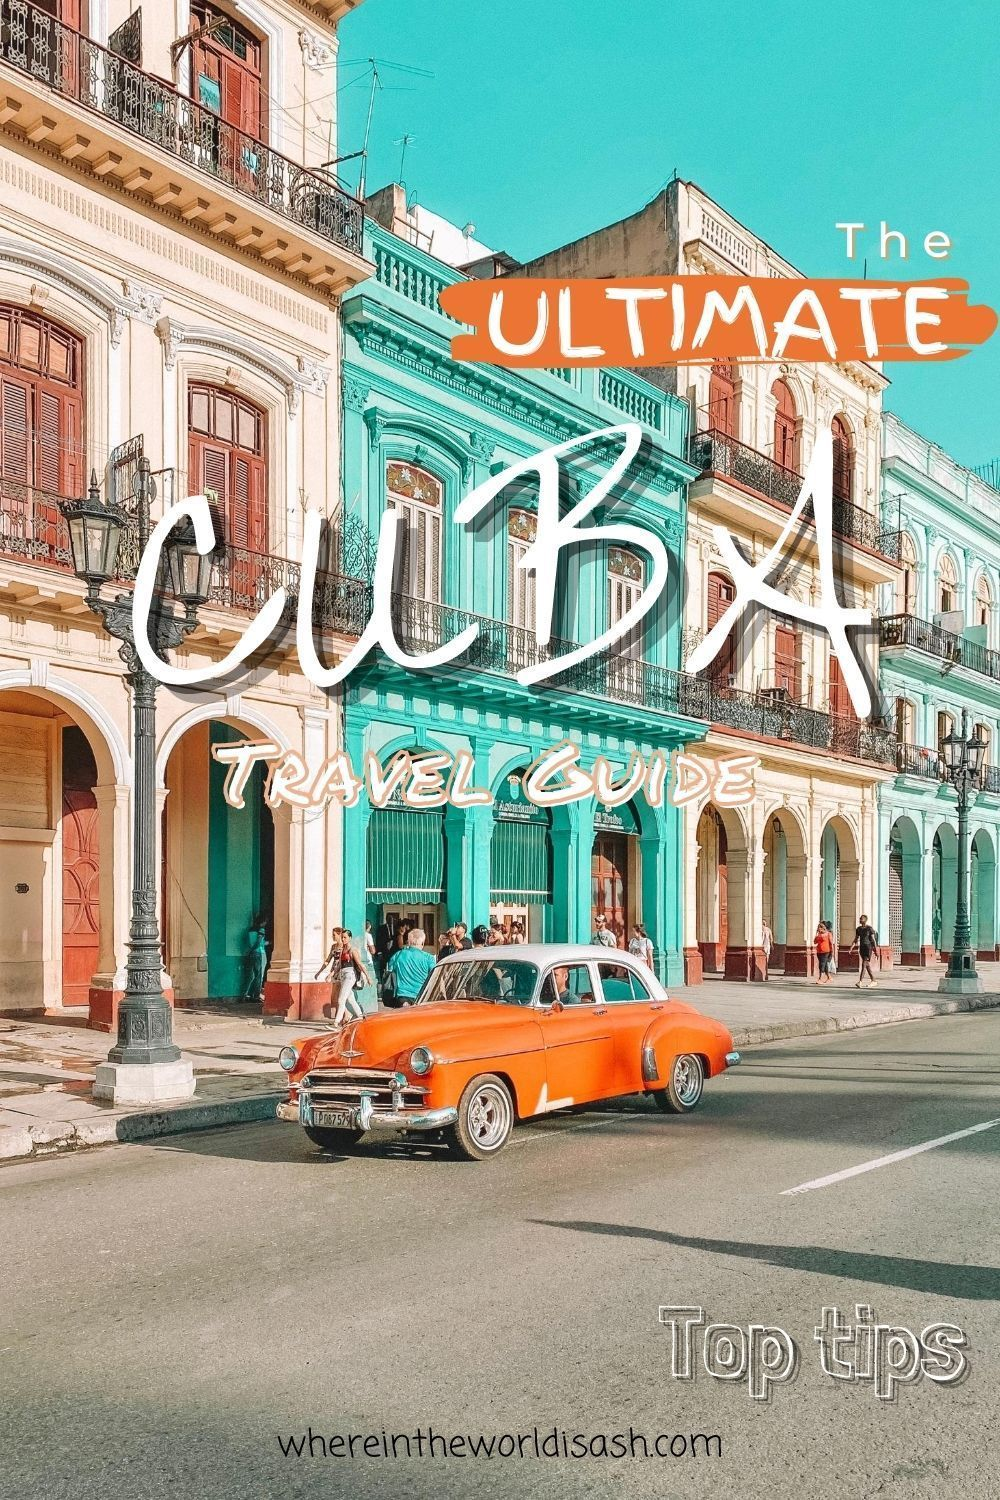 Click here to find out my top tips for travel to Cuba! Accommodation | Casa Particulars | Transport | Currency | WiFi | Staying Hydrated | Learn Some Spanish | Solo Female Travellers | Cuba Travel Guide By Triposo | Jetlag | Photos |   #cuba #travelcuba #explorecuba #caribbeantravel #explorecaribbean #centralamerica #caribbean #centralamericatravel #explorecentralamerica #cubatravel #travel #solofemaletravel